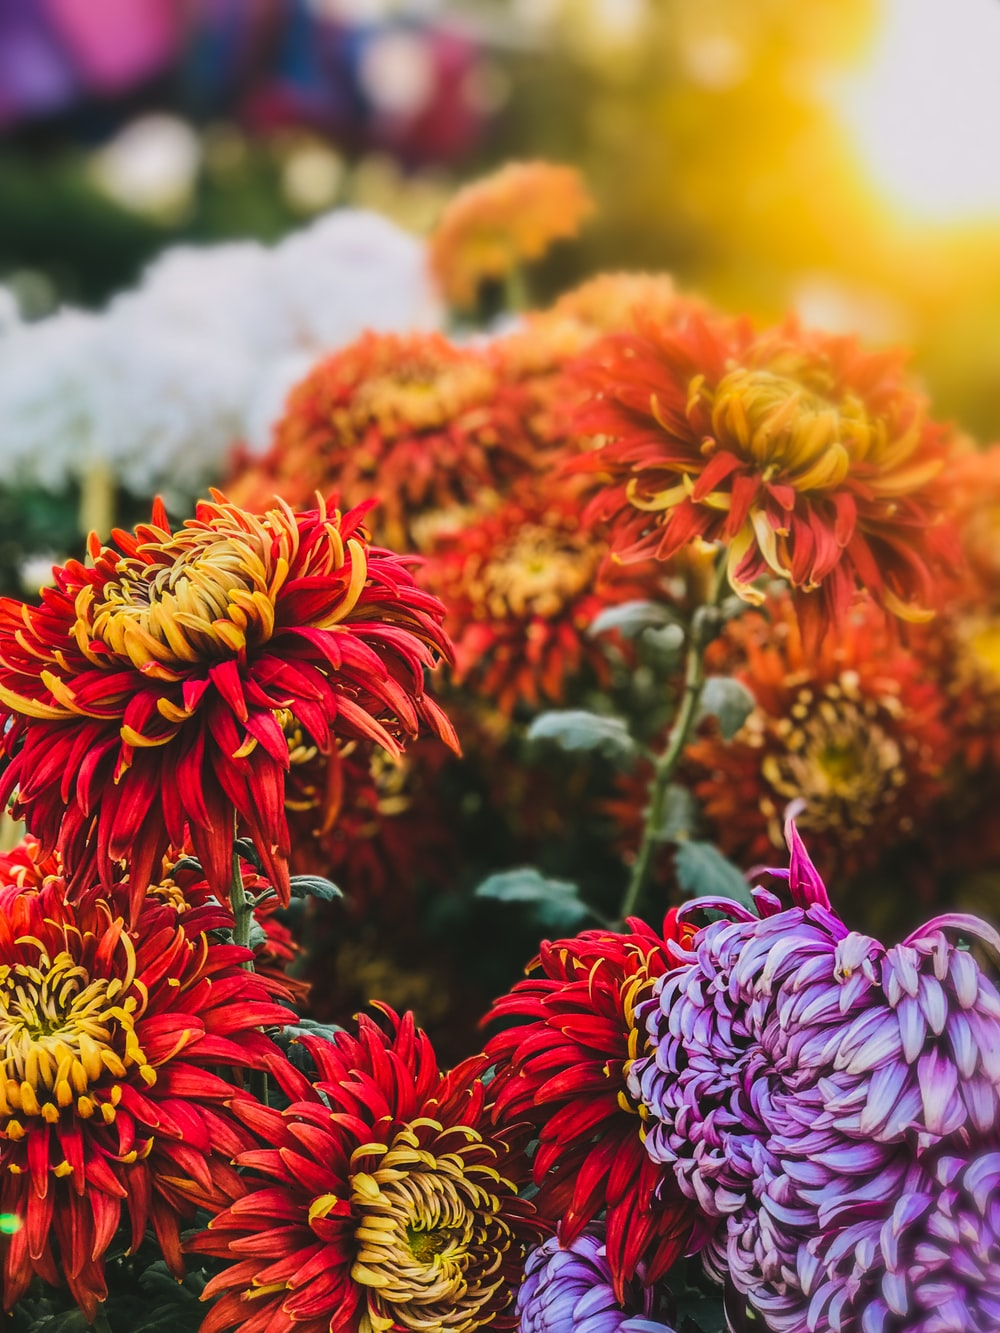 orange and red petaled flower closeup photography